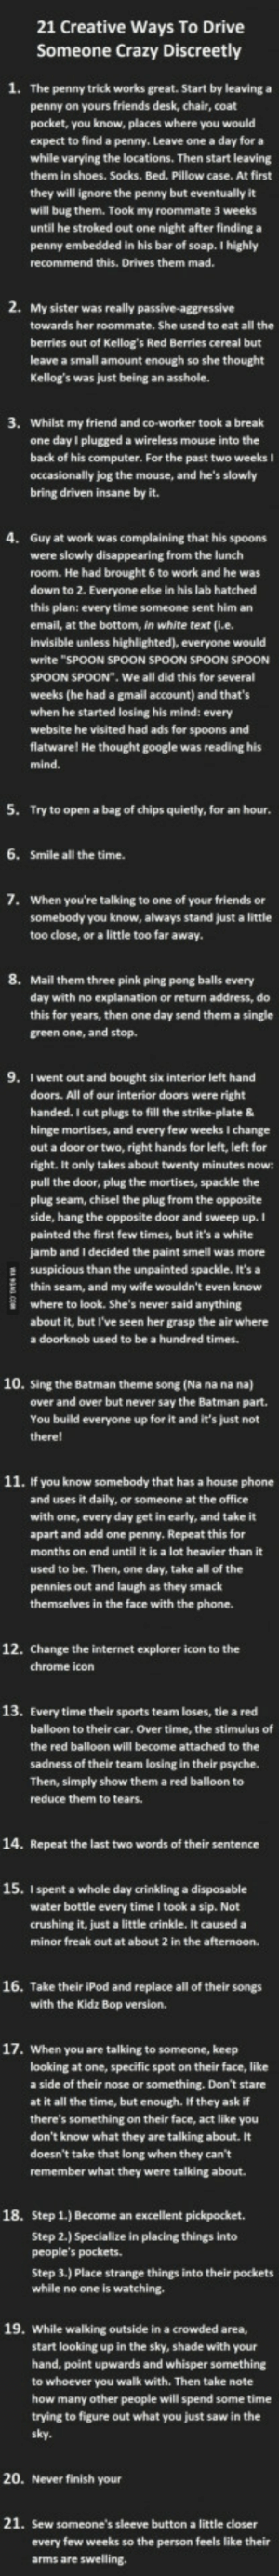 "Batman, Crazy, and Friends: 21 Creative Ways To Drive  Someone Crazy Discreetly  1.  The penny trick works great. Start by leaving a  penny on yours friends desk, chair, coat  pocket, you know, places where you would  expect to find a penny. Leave one a day for a  while varying the locations. Then start leaving  them in shoes. Socks. Bed. Pillow case. At first  they will ignore the penny but  will bug them. Took my roommate 3 weeks  until he stroked out one night after finding a  penny  recommend this. Drives them mad.  embedded in his bar of soap. I highly  towards her roommate. She used to eat all the  berries out of Kellog's Red Berries cereal but  leave a small amount enough so she thought  3.  Whilst my friend and co-worker took a break  one day I plugged a wireless mouse into the  back of his computer. For the past two weeks I  occasionally jog the mouse, and he's slowly  bring driven insane by it.  4.  Guy at work was complaining that his spoons  were slowly disappearing from the lunch  room. He had brought 6 to work and he was  down to 2. Everyone else in his lab hatched  this plan: every time someone sent him an  email, at the bottom, in white text (i.e.  would  write ""SPOON SPOON SPOON SPOON SPOON  SPOON SPOON"". We all did this for several  weeks (he had a gmail account) and that's  when he started losing his mind: every  website he visited had ads for  spoons and  his  5.  Try to open a bag of chips quietly, for an hour.  6.  Smile all the time.  7.  When you're talking to one of your friends or  somebody you know, always stand just a little  too close, or a little too far away.  8.  Mail them three pink ping pong balls every  day with no explanation or return address, do  this for years, then one day send them a single  green one, and stop.  9.  I went out and bought six interior left hand  doors. All of our interior doors were right  handed. I cut plugs to fill the strike-plate &  hinge mortises, and every few weeks I change  out a door or two, right hands for left, left for  right. It only takes about twenty minutes now  pull the door, plug the mortises, spackle the  plug seam, chisel the plug from the opposite  side, hang the opposite door and sweep up.  painted the first few times, but it's a white  jamb and I decided the paint smell was more  E suspicious than the unpainted spackle. It's a  thin seam, and my wife wouldn't even know  where to look. She's never said anything  about it, but I've seen her grasp the air where  a doorknob used to be a hundred times.  10. sing the Batman theme song (Na na na na)  over and over but never say the Batman part.  You build everyone up for it and it's just not  therel  11. If you know somebody that has a house phone  and uses it daily, or someone at the office  with one, every day get in early, and take it  apart and add one penny. Repeat this for  months on end until it is a lot heavier than it  used to be. Then, one day, take all of the  pennies out and laugh as they smack  themselves in the face with the phone.  12. Change the internet explorer icon to the  icon  13. Every time their sports team loses, tie a red  balloon to their car. Over time, the stimulus of  the red balloon will become attached to the  sadness of their team losing in their psyche.  Then, simply show them a red balloon to  reduce them to tears.  14. Repeat the last two words of their sentence  15. Ispent a whole day crinkling a disposable  water bottle every time I took a sip. Not  crushing it, just a little crinkle. It caused a  minor freak out at about 2 in the afternoon.  16. Take their iPod and replace all of their songs  with the Kidz Bop version.  17. When you are talking to someone, keep  looking at one, specific spot on their face, like  a side of their nose or something. Don't stare  at it all the time, but enough. If they ask if  there's something on their face, act like you  don't know what they are talking about. It  doesn't take that long when they can't  remember what they were talking about.  18.  Step 1.) Become an excellent pickpocket.  Step 2.) Specialize in placing things into  Step 3.) Place strange things into their pockets  e no one is  19. While walking outside in a crowded area,  start looking up in the sky, shade with your  hand, point upwards and whisper something  to whoever you walk with. Then take note  how  trying to figure out what you just saw in the  sky.  many other people will spend some t  20.  Never finish your  21. Sew someone's sleeve button a little closer  every few weeks so the person feels like their Want to drive someone crazy?"